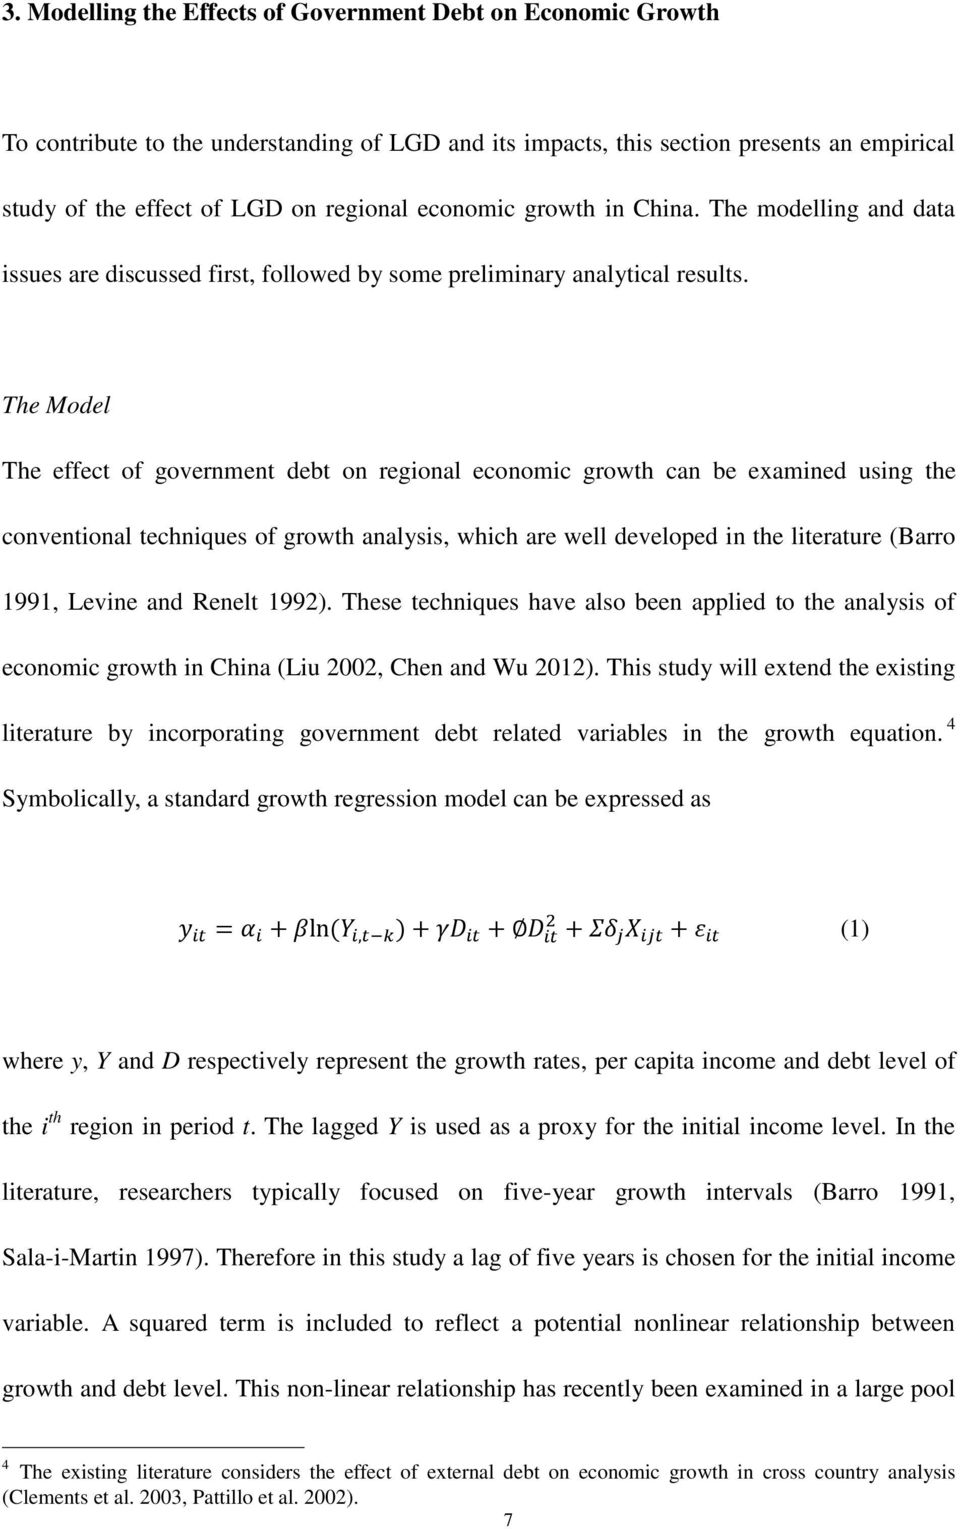 The Model The effect of government debt on regional economic growth can be examined using the conventional techniques of growth analysis, which are well developed in the literature (Barro 1991,